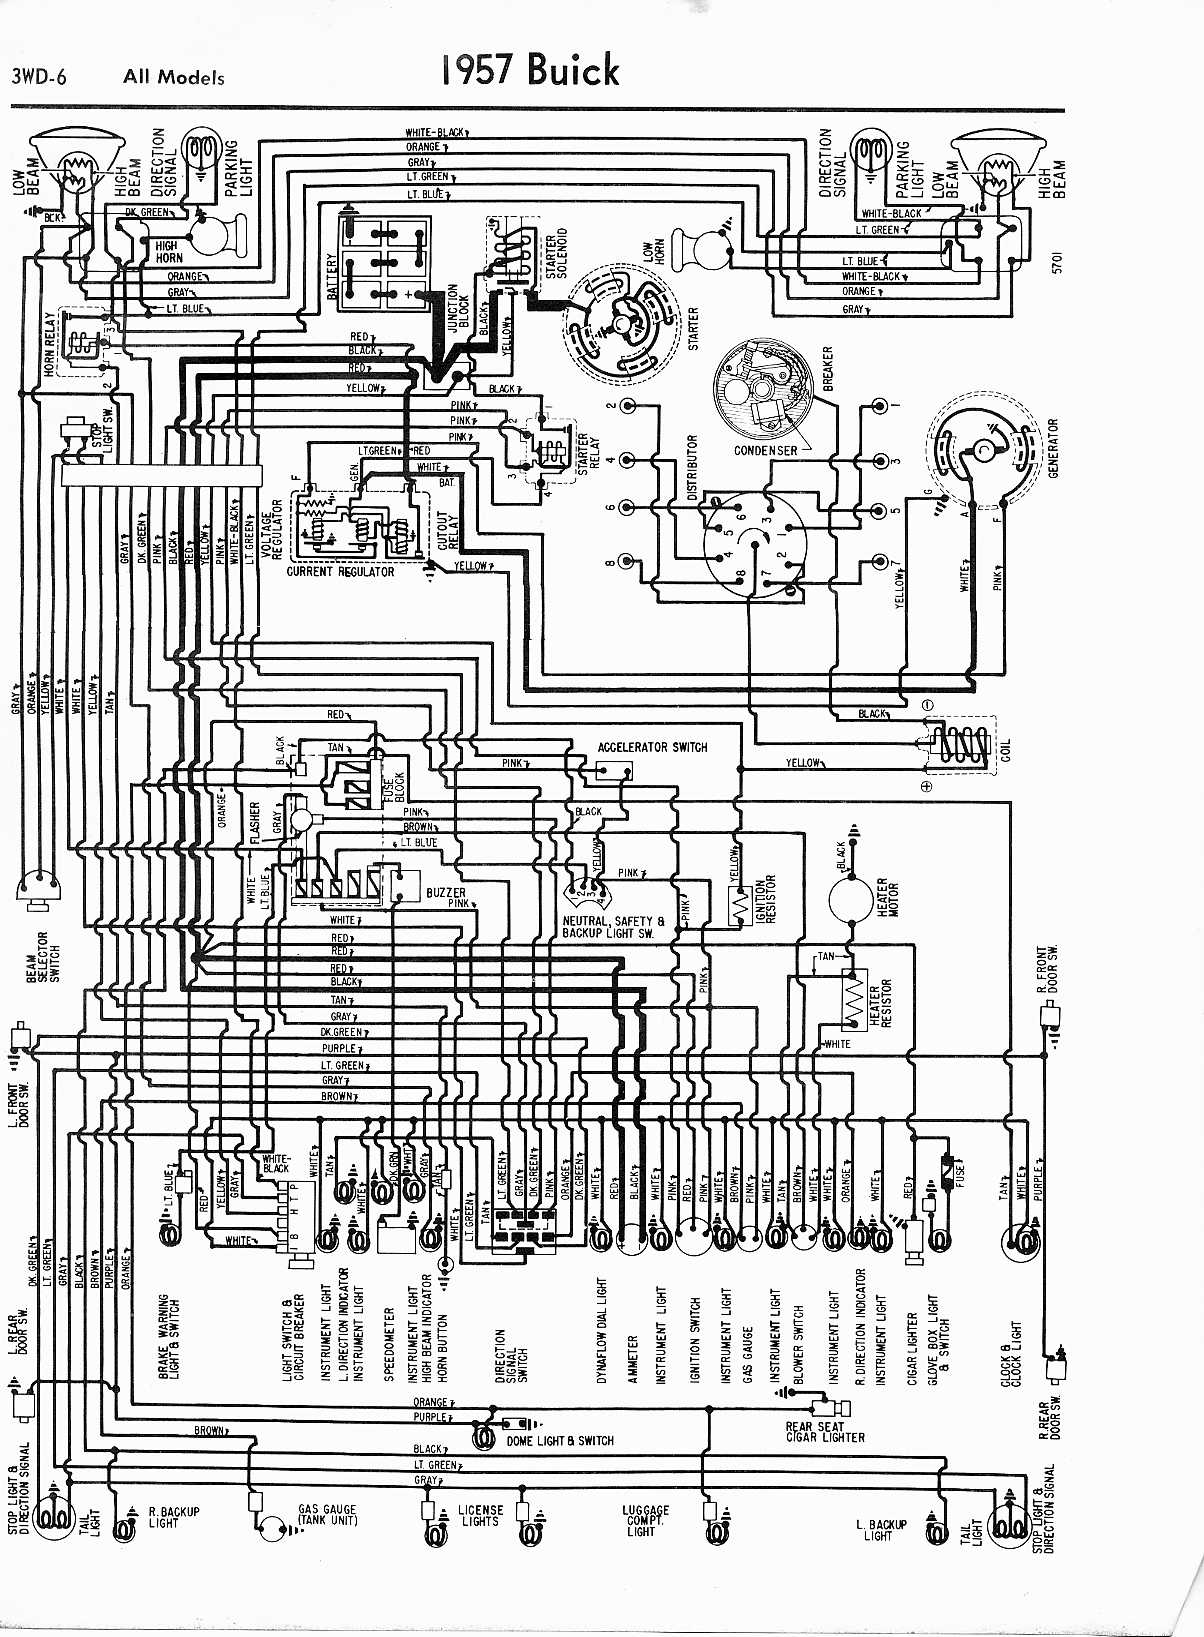 Free Buick Wiring Diagram Reinvent Your 2000 Park Avenue Starter Download Diagrams 1957 1965 Rh Oldcarmanualproject Com 2004 Lesabre 95